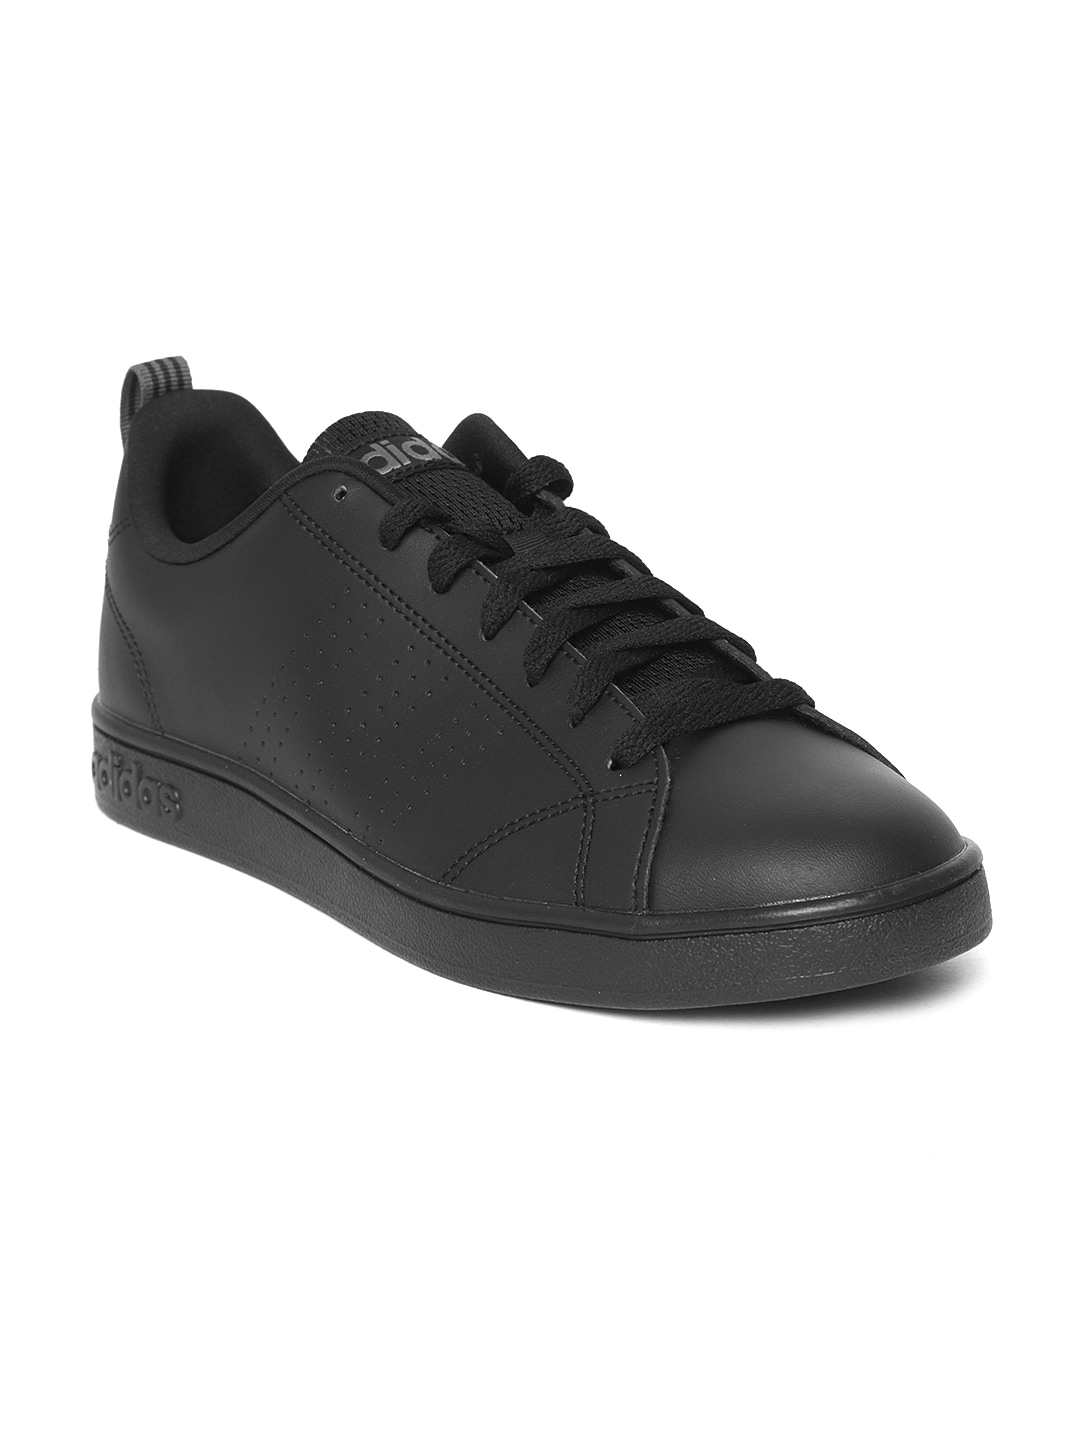 quality design f163d 767d7 Shoes - Buy Shoes for Men, Women  Kids online in India - Myn